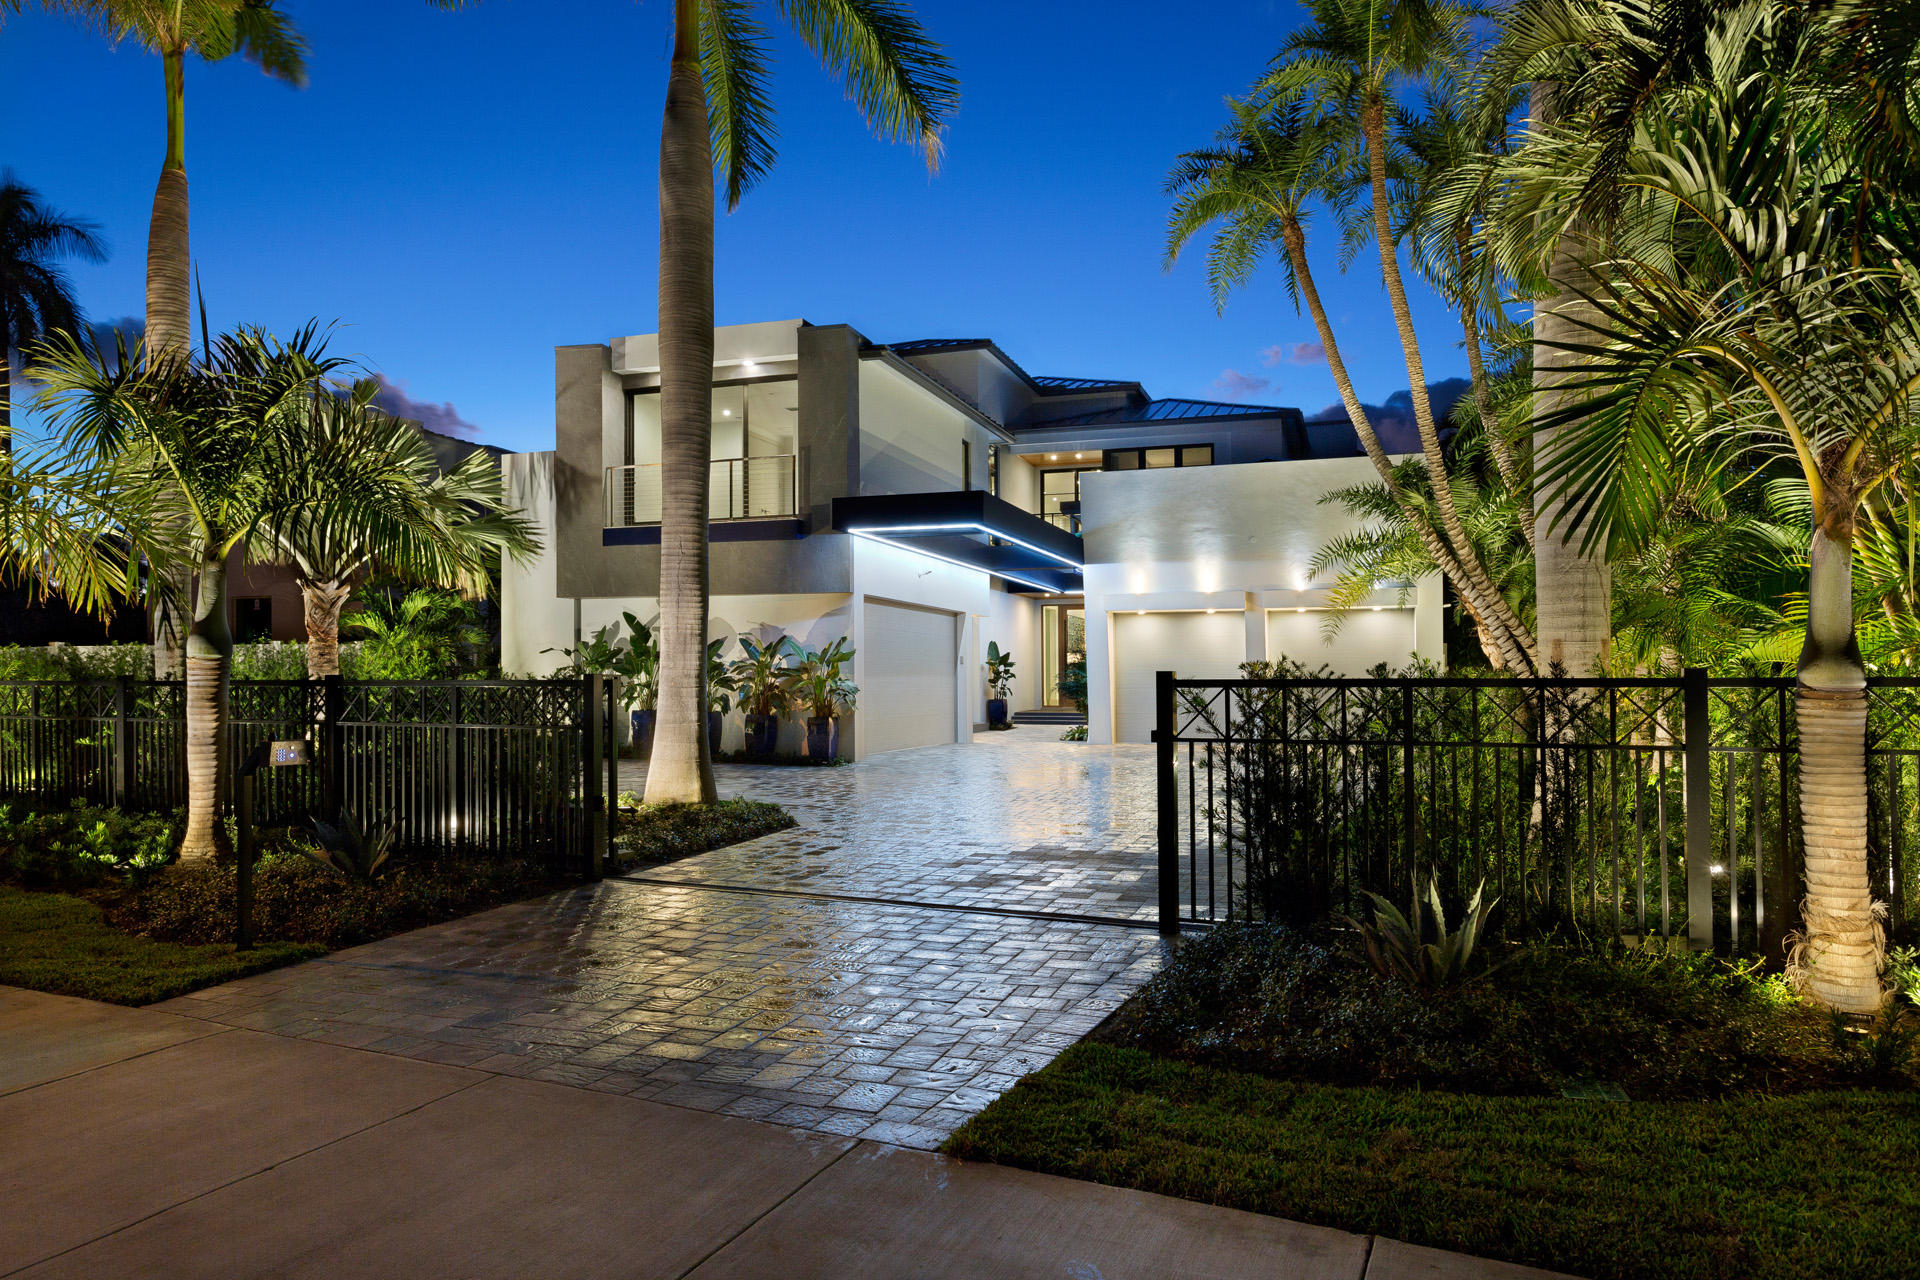 """New custom-built Randall Stofft-designed contemporary masterpiece on Ocean Boulevard, a short walk from the beach. An entertainer's showplace, this oasis of modern luxury brings laid-back elegance to indoor/outdoor living. A floating staircase highlights the window-walled open interiors. The expansive compound-like setting offers a fire-lit lanai with summer kitchen, sleek saltwater pool and two private guest houses.The information herein is deemed reliable and subject to errors, omissions or changes without notice.  The information has been derived from architectural plans or county records. Buyer should verify all measurements DISCLAIMER: The written and verbal information provided including but not limited to prices, measurements, square footages, lot sizes, calculations and statistics have been obtained and conveyed from third parties such as the applicable Multiple Listing Service, public records as well as other sources. All information including that produced by the Sellers or Listing Company are subject to errors, omissions or changes without notice and should be independently verified by any prospect for the purchase of a Property.  The Sellers and Listing Company expressly disclaim any warranty or representation regarding all information.  Prospective purchasers' use of this or any written and verbal information is acknowledgement of this disclaimer and that Prospects shall perform their own due diligence.  Prospective purchasers shall not rely on any written or verbal information provided when entering a contract for sale and purchase.  Some affiliations may not be applicable to certain geographic areas. If your property is currently listed, please do not consider this a solicitation. In the event a Buyer defaults, no commission will be paid to either Broker on the Deposits retained by the Seller.  """"No Commissions Paid until Title Passes.""""  Copyright 2018 Listing Company. All Rights Reserved."""